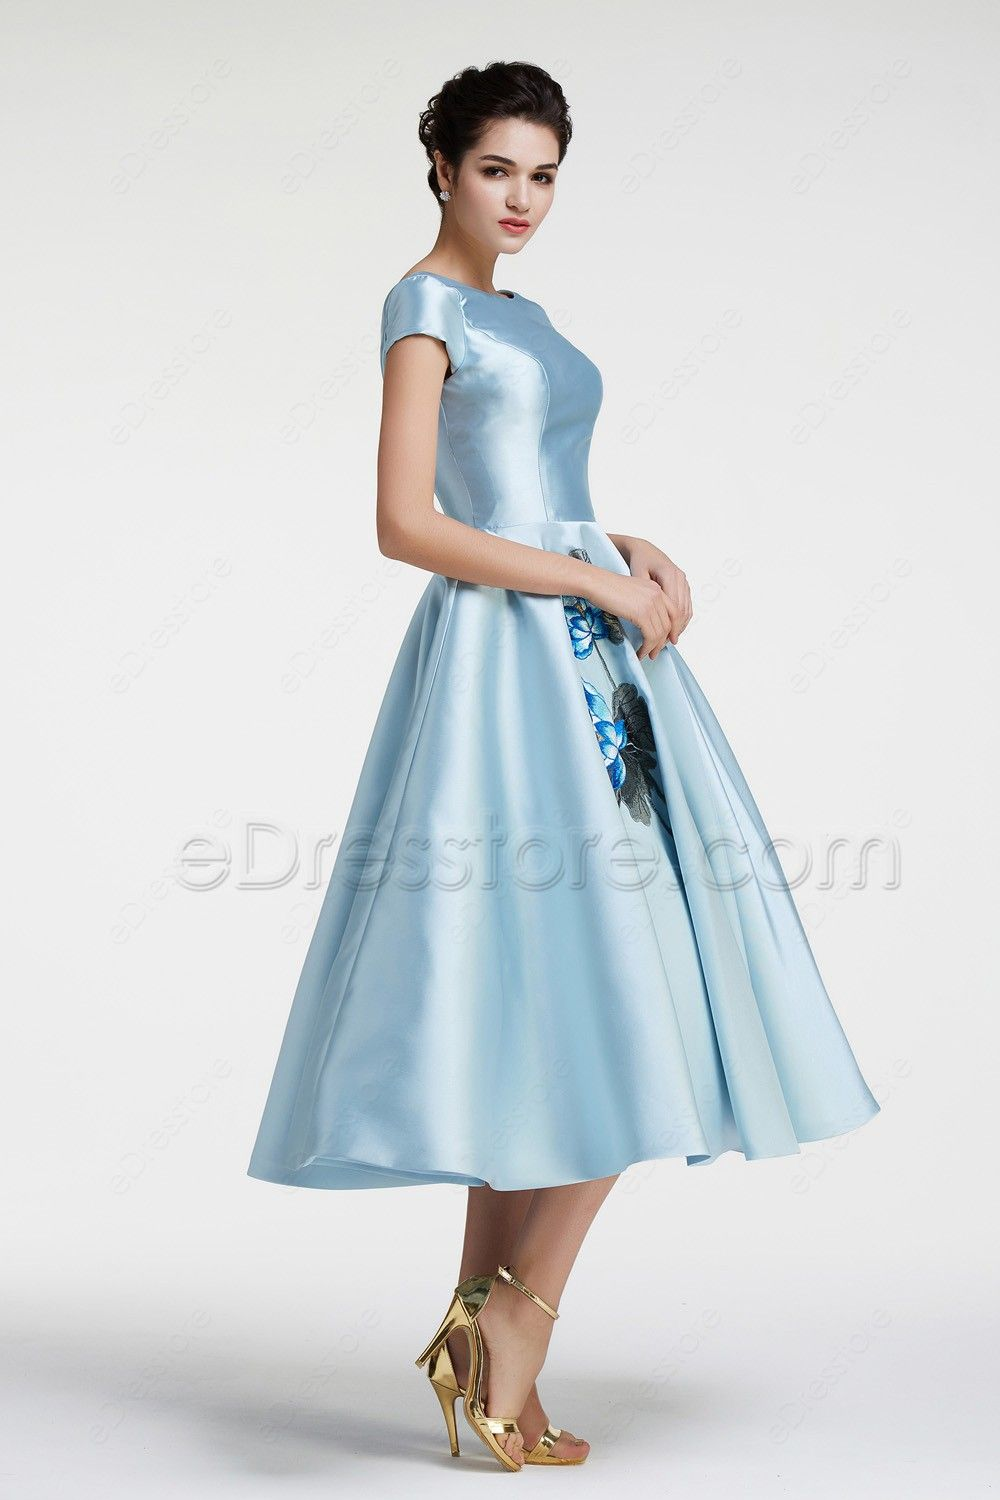 Modest Ball Gown Ice Blue Vintage Prom Dress with Sleeves | Tea ...